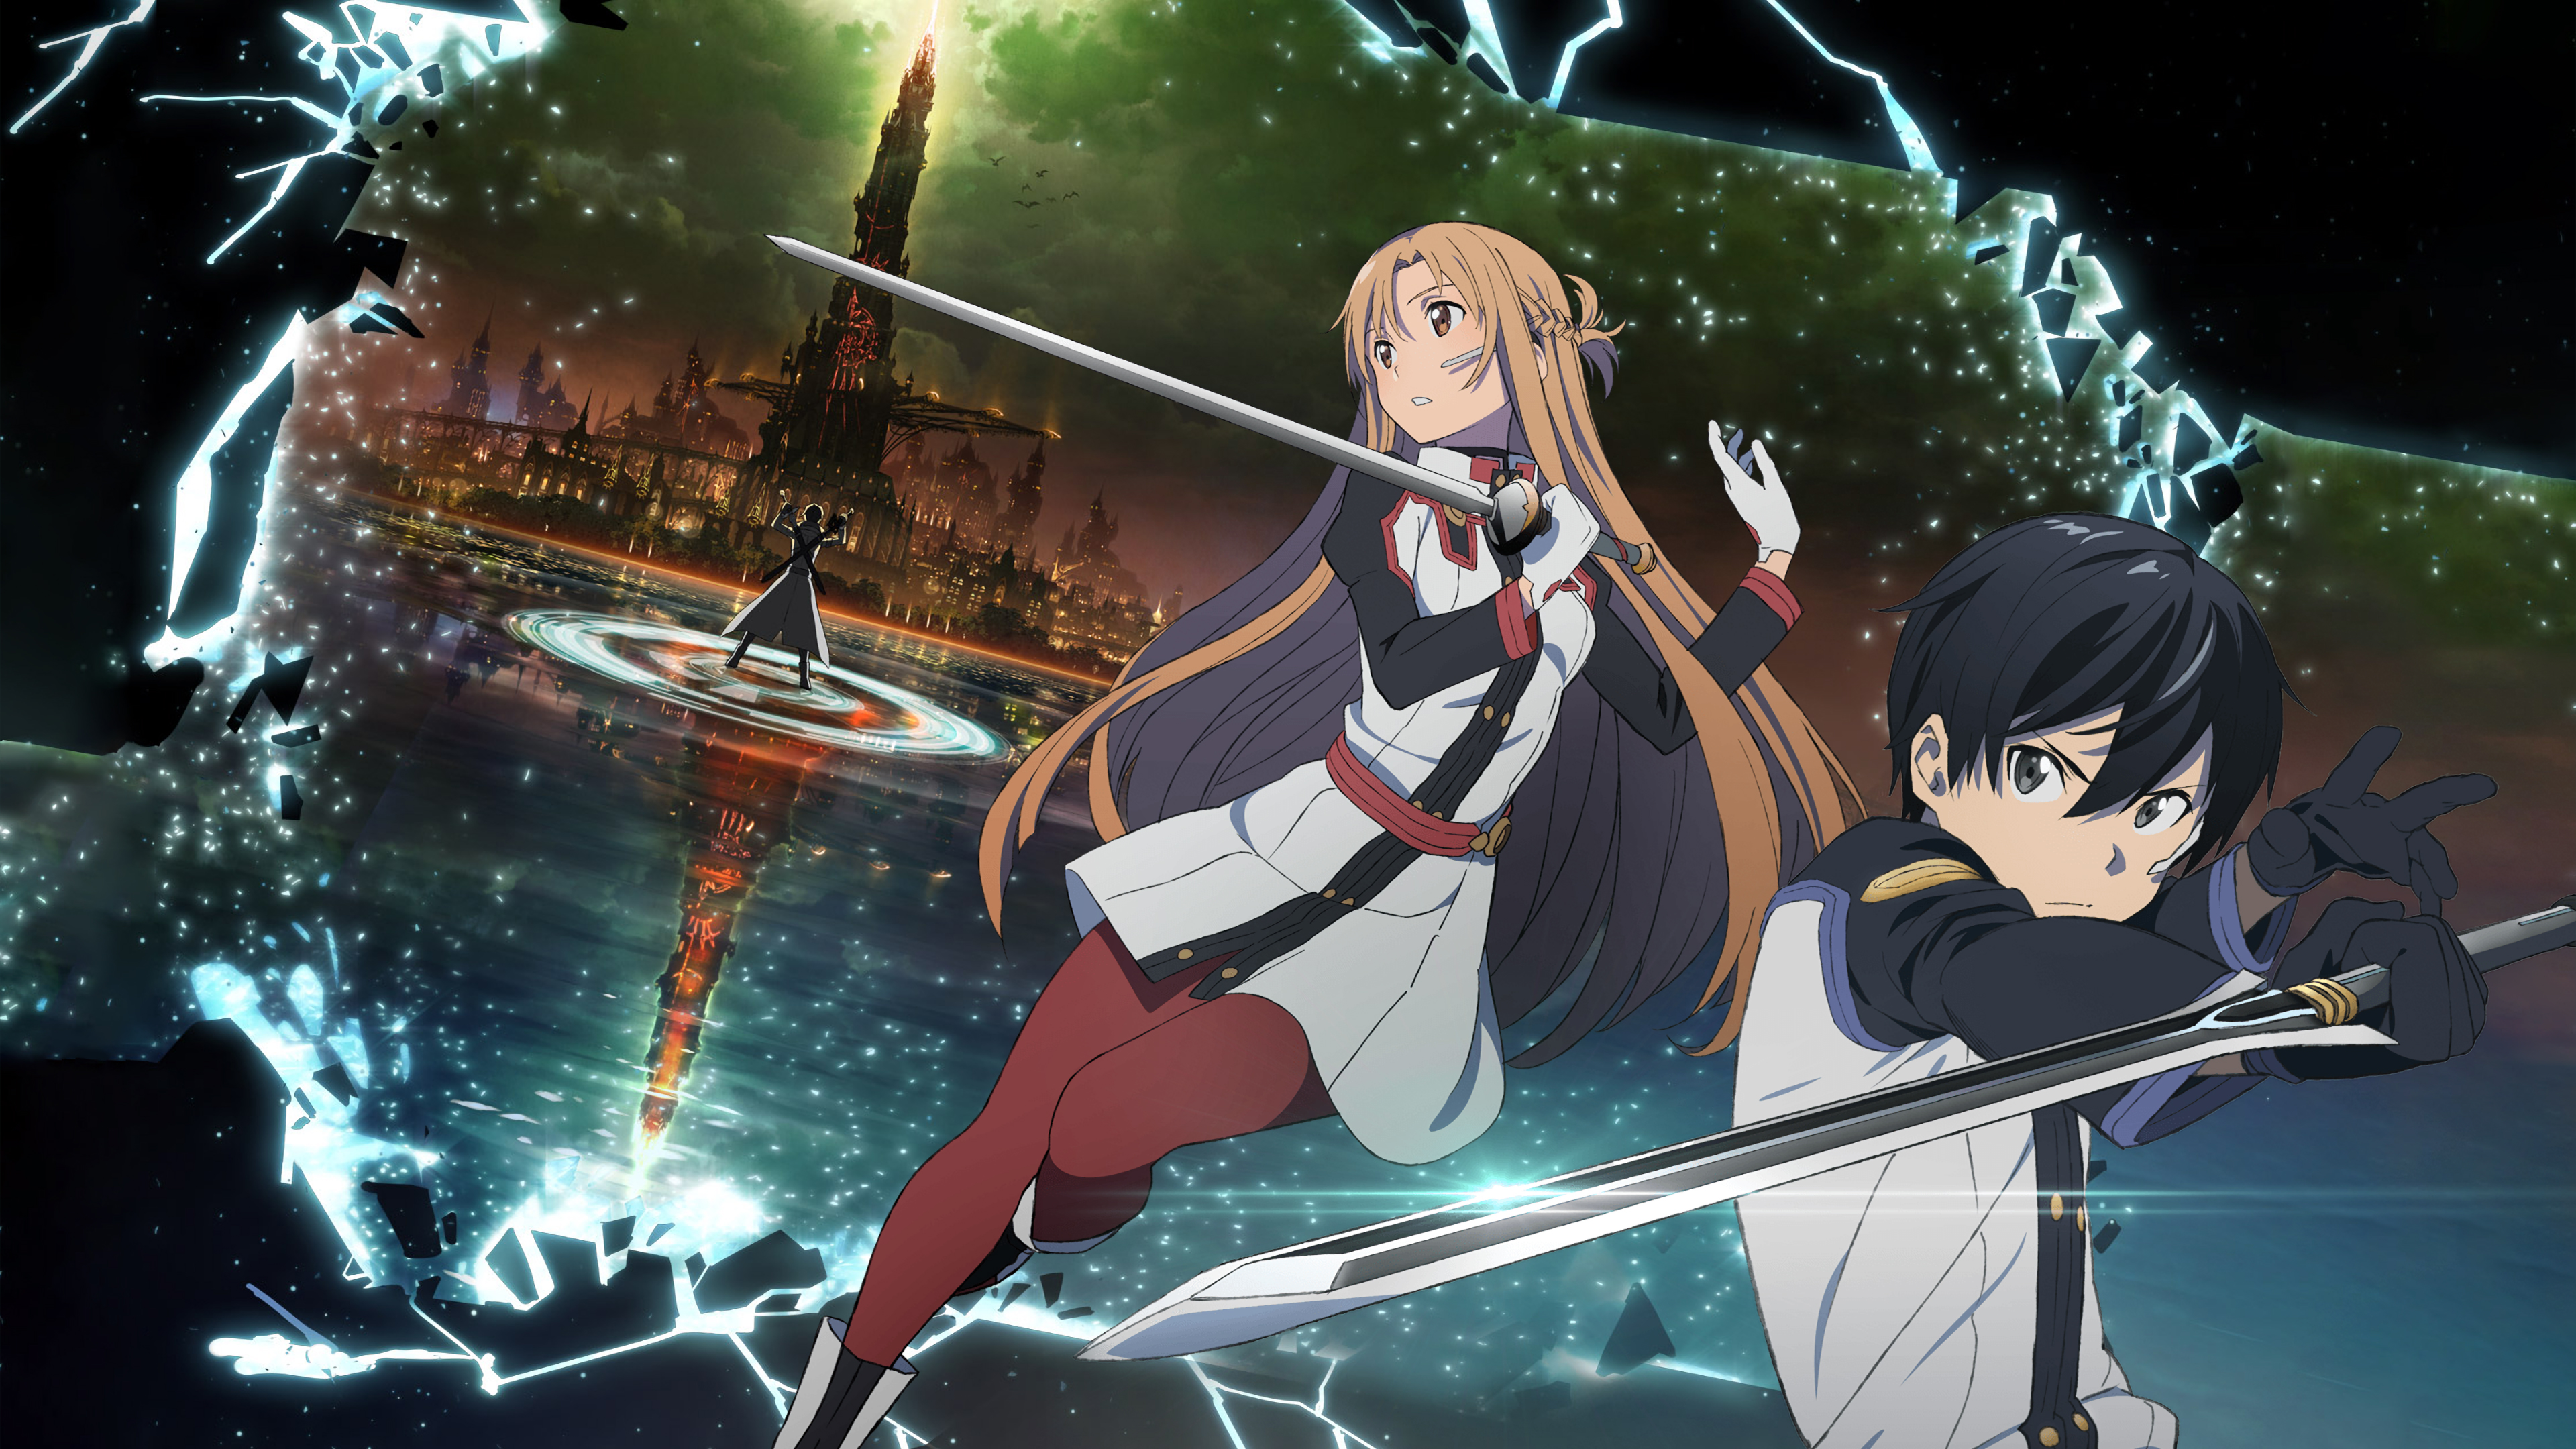 Asuna And Kirito Sword Art Online 4k Ultra Hd Wallpaper